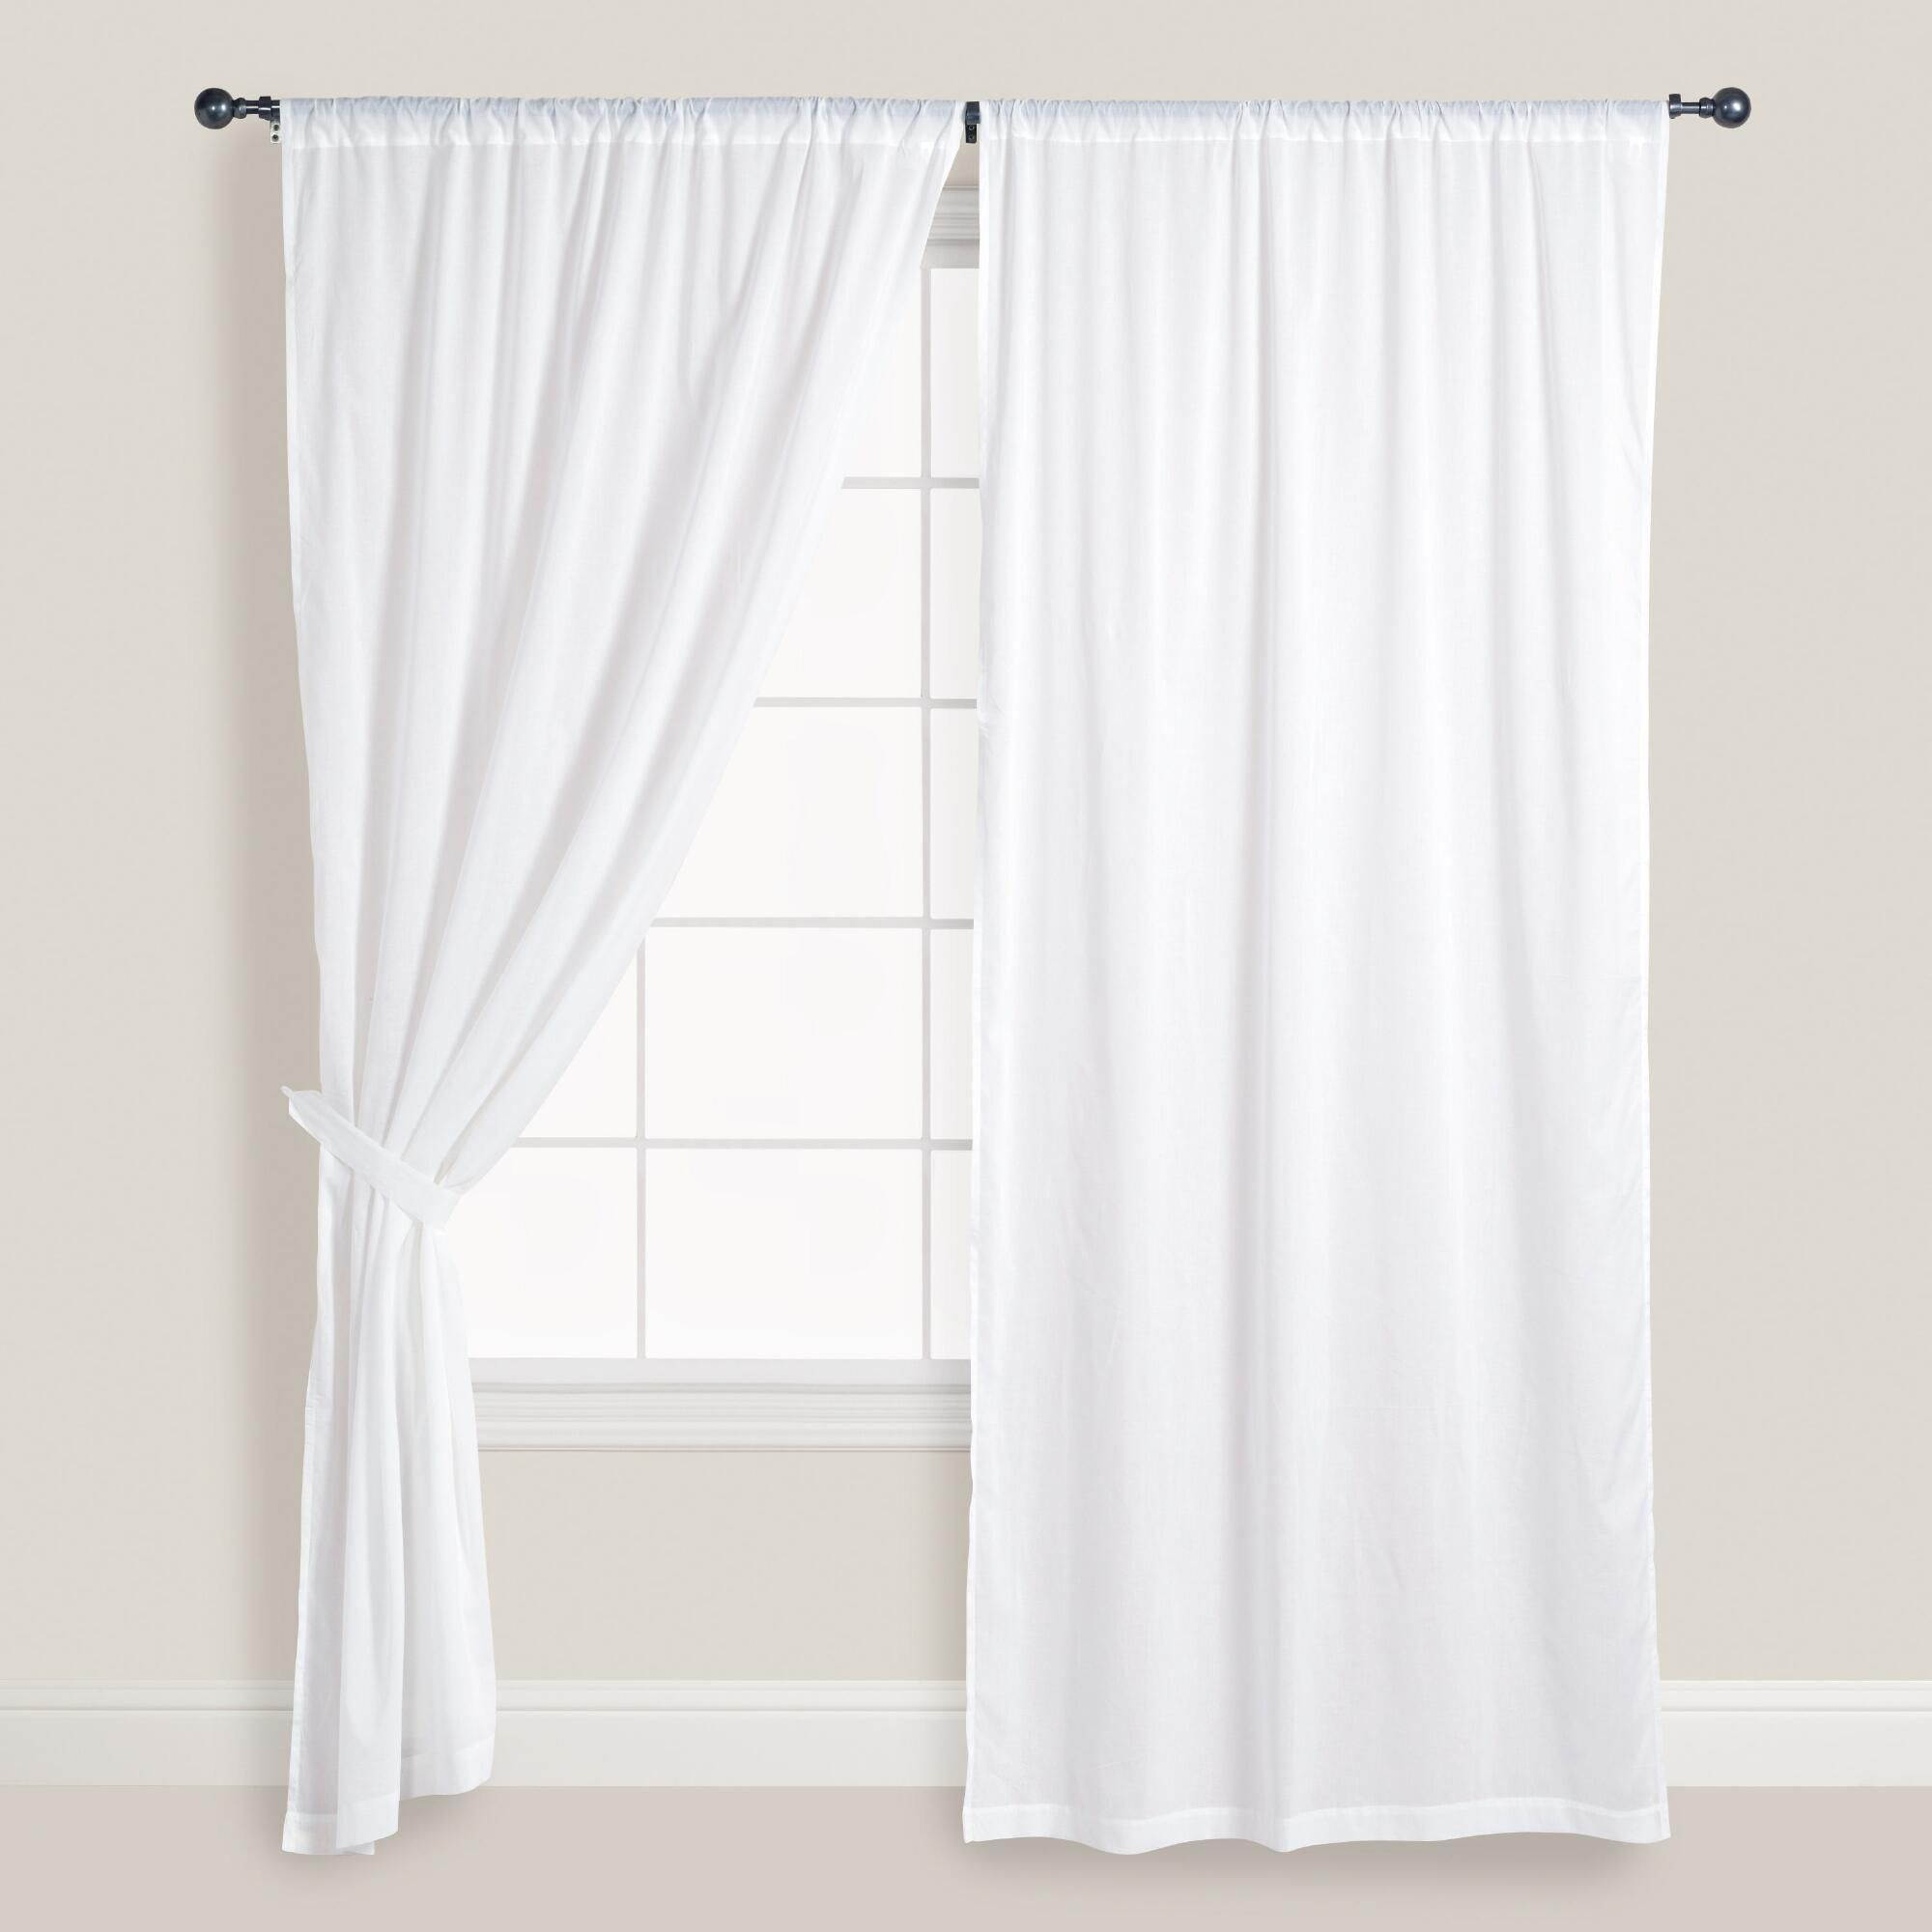 Dreamy, Light And Airy, Our White Cotton Voile Curtains